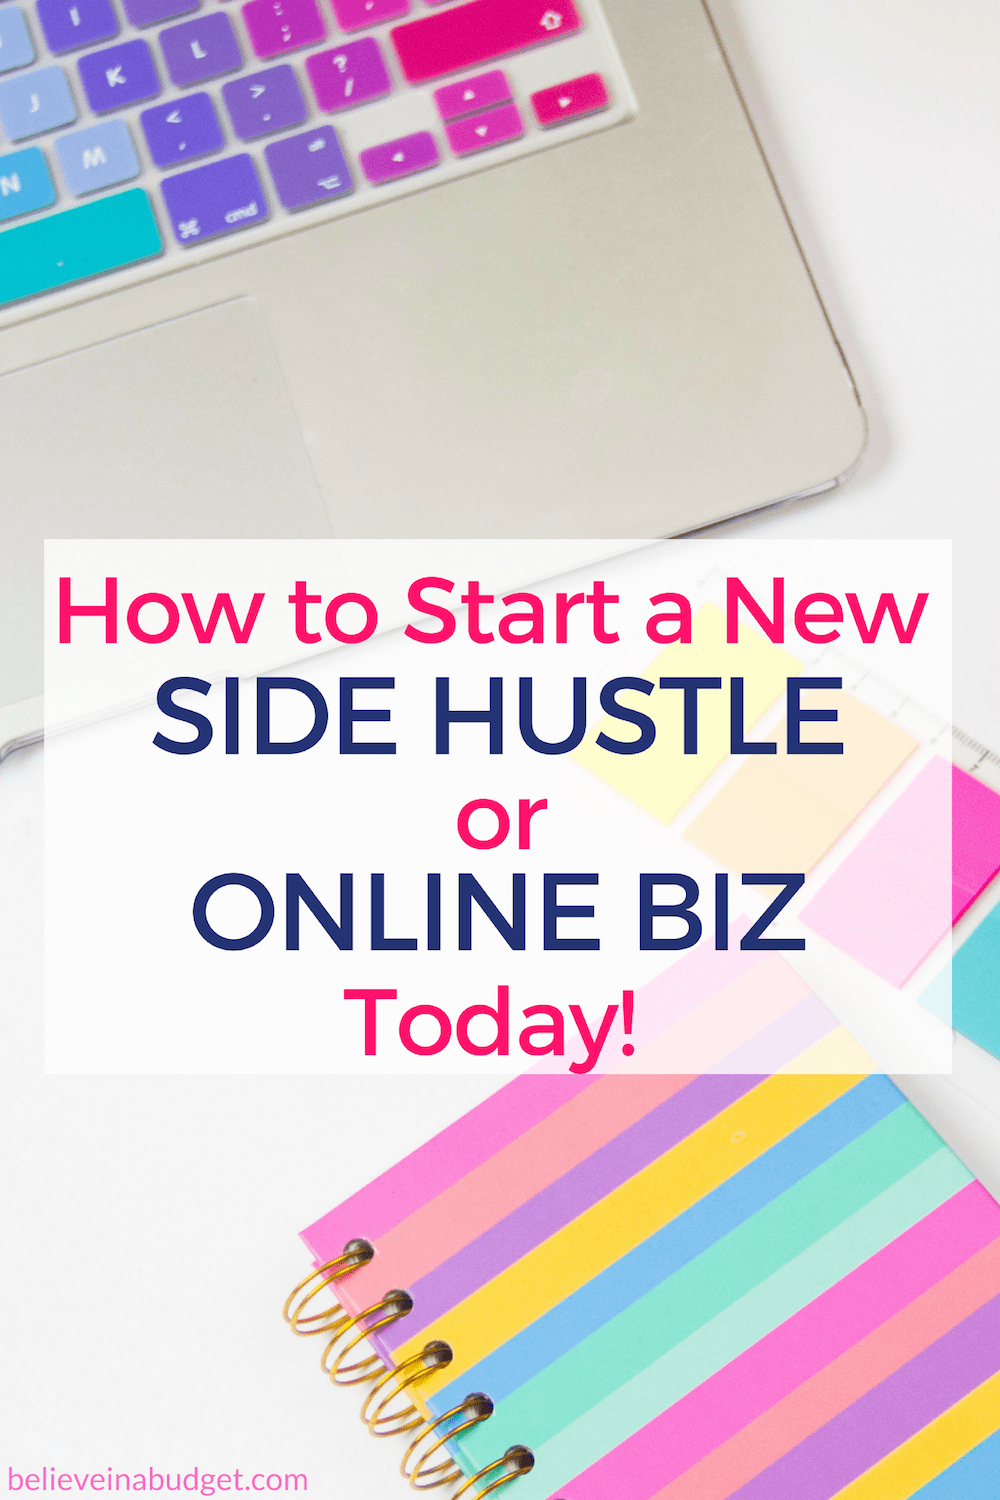 Learn how to side hustle if you want to make extra money, get out of debt or start saving money!